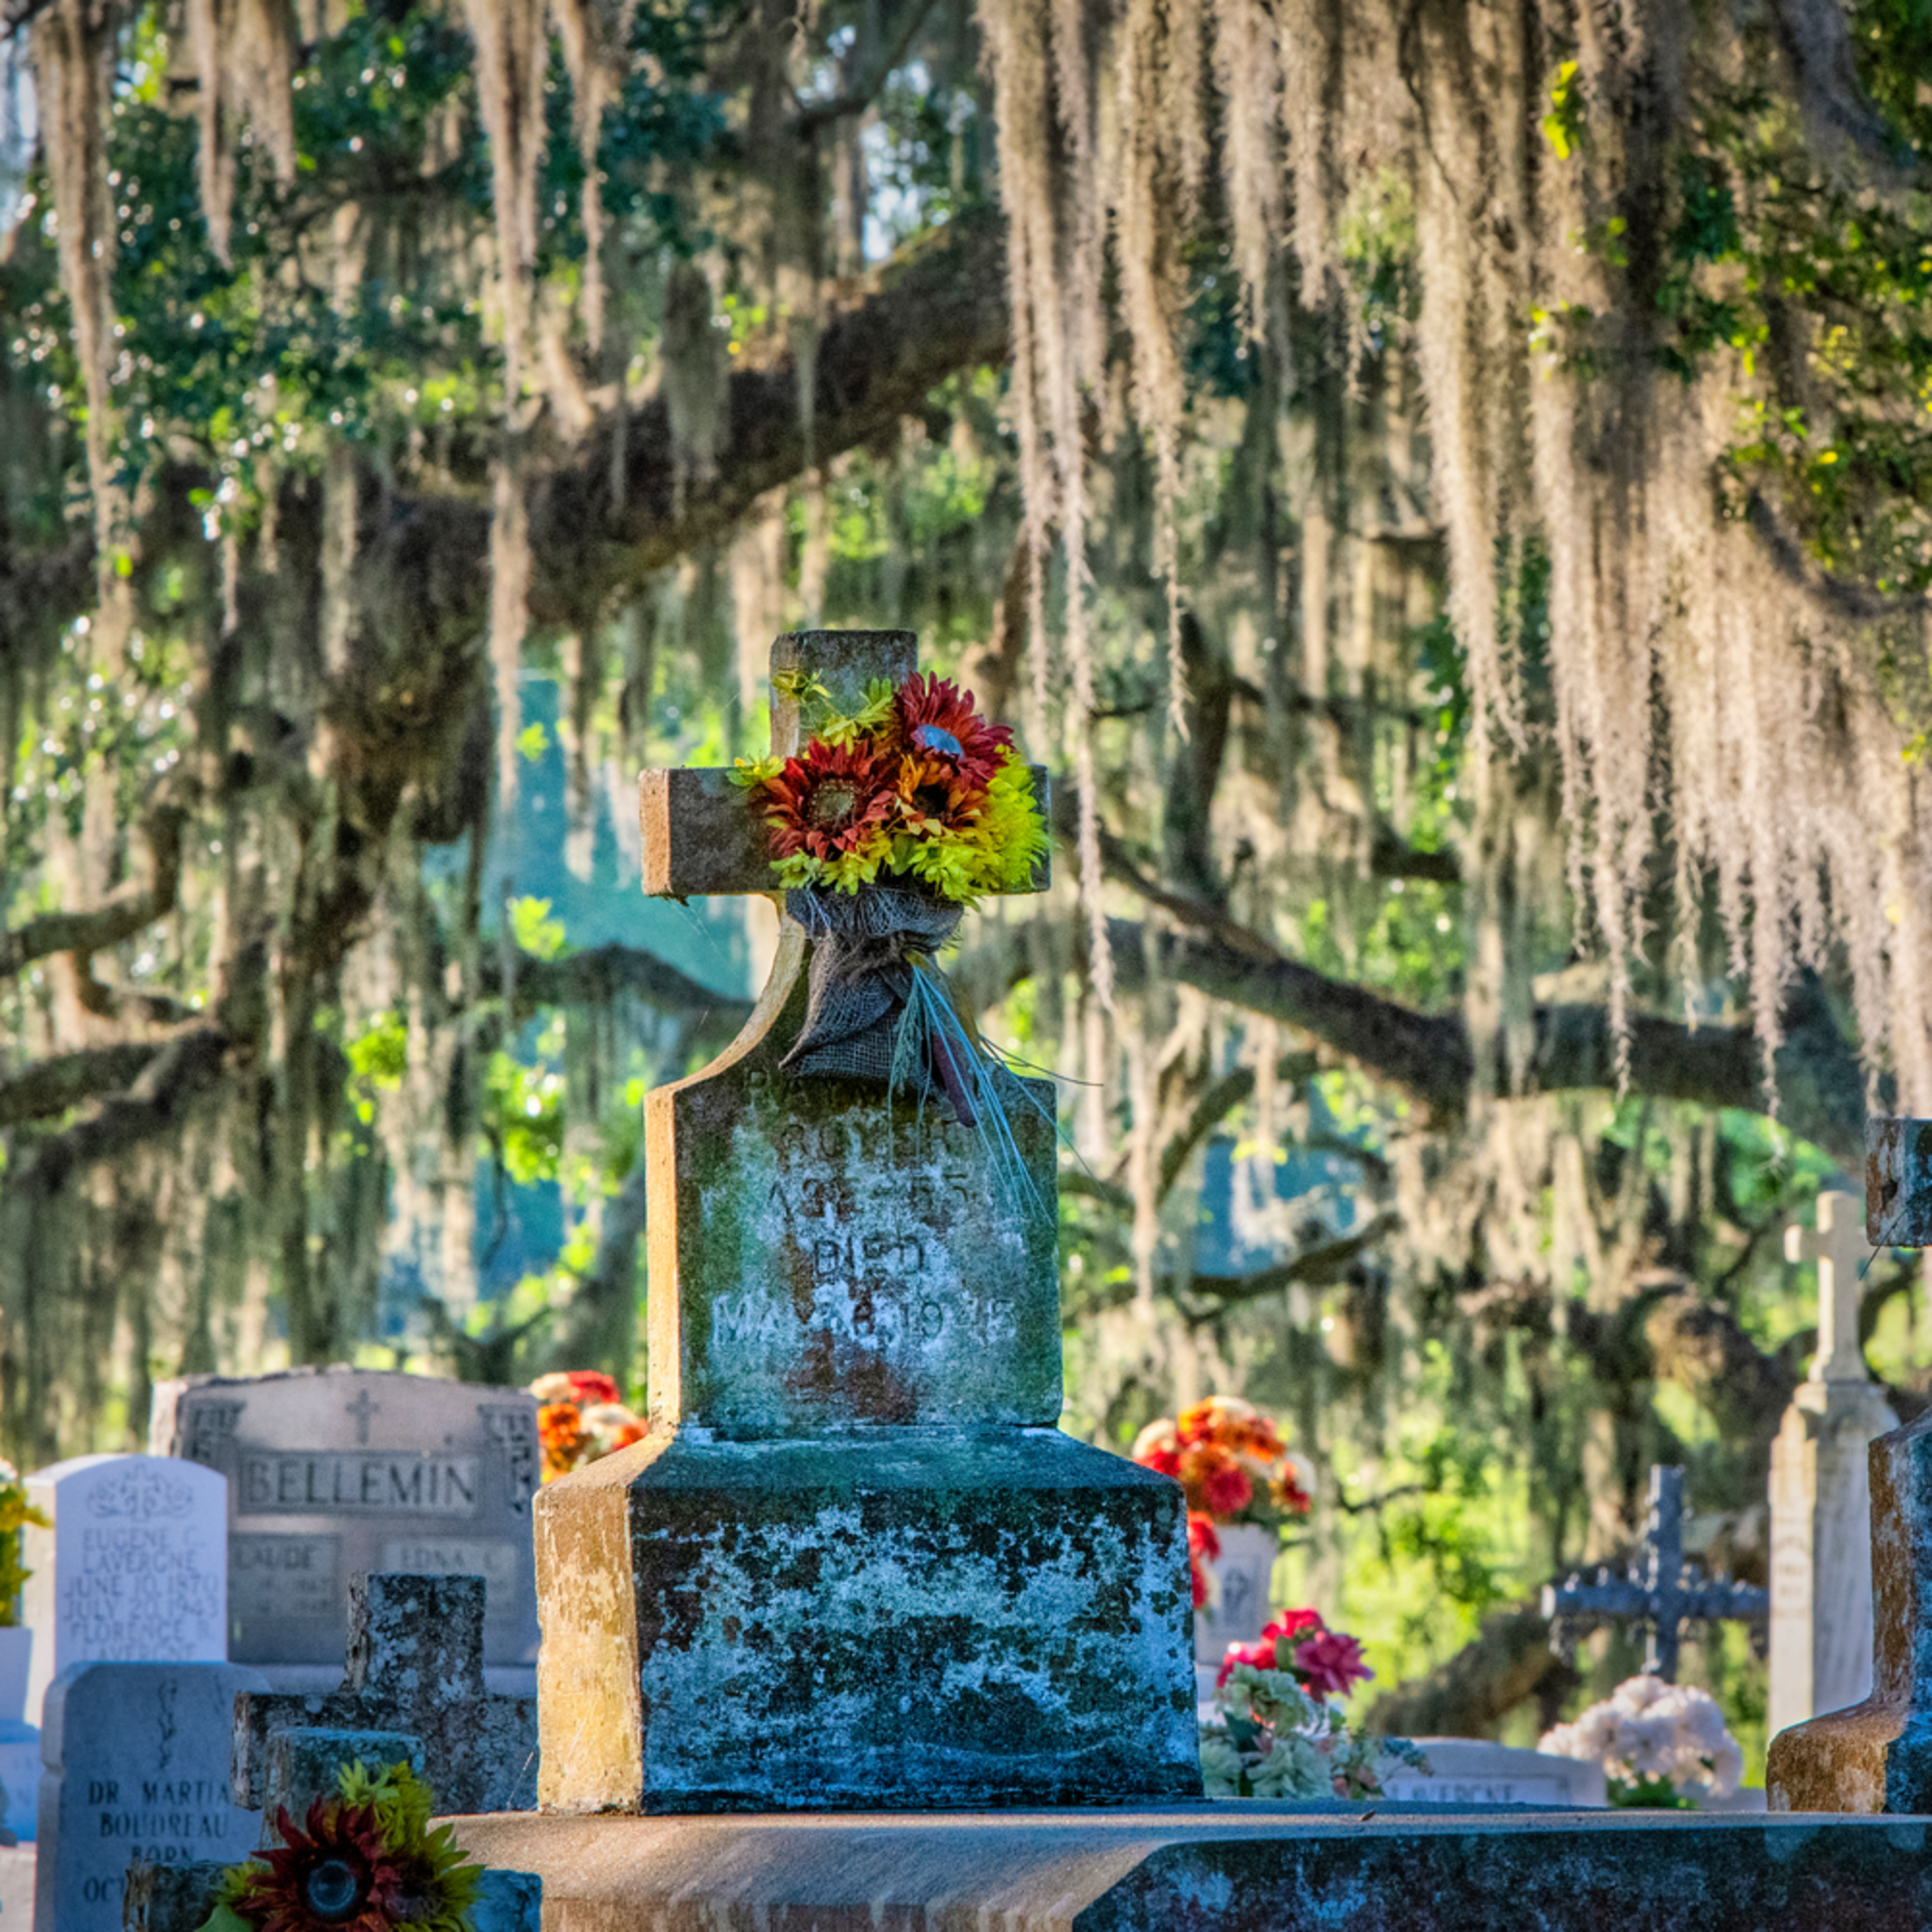 Andy crawford photography grand coteau cemetery 1 nydzlg